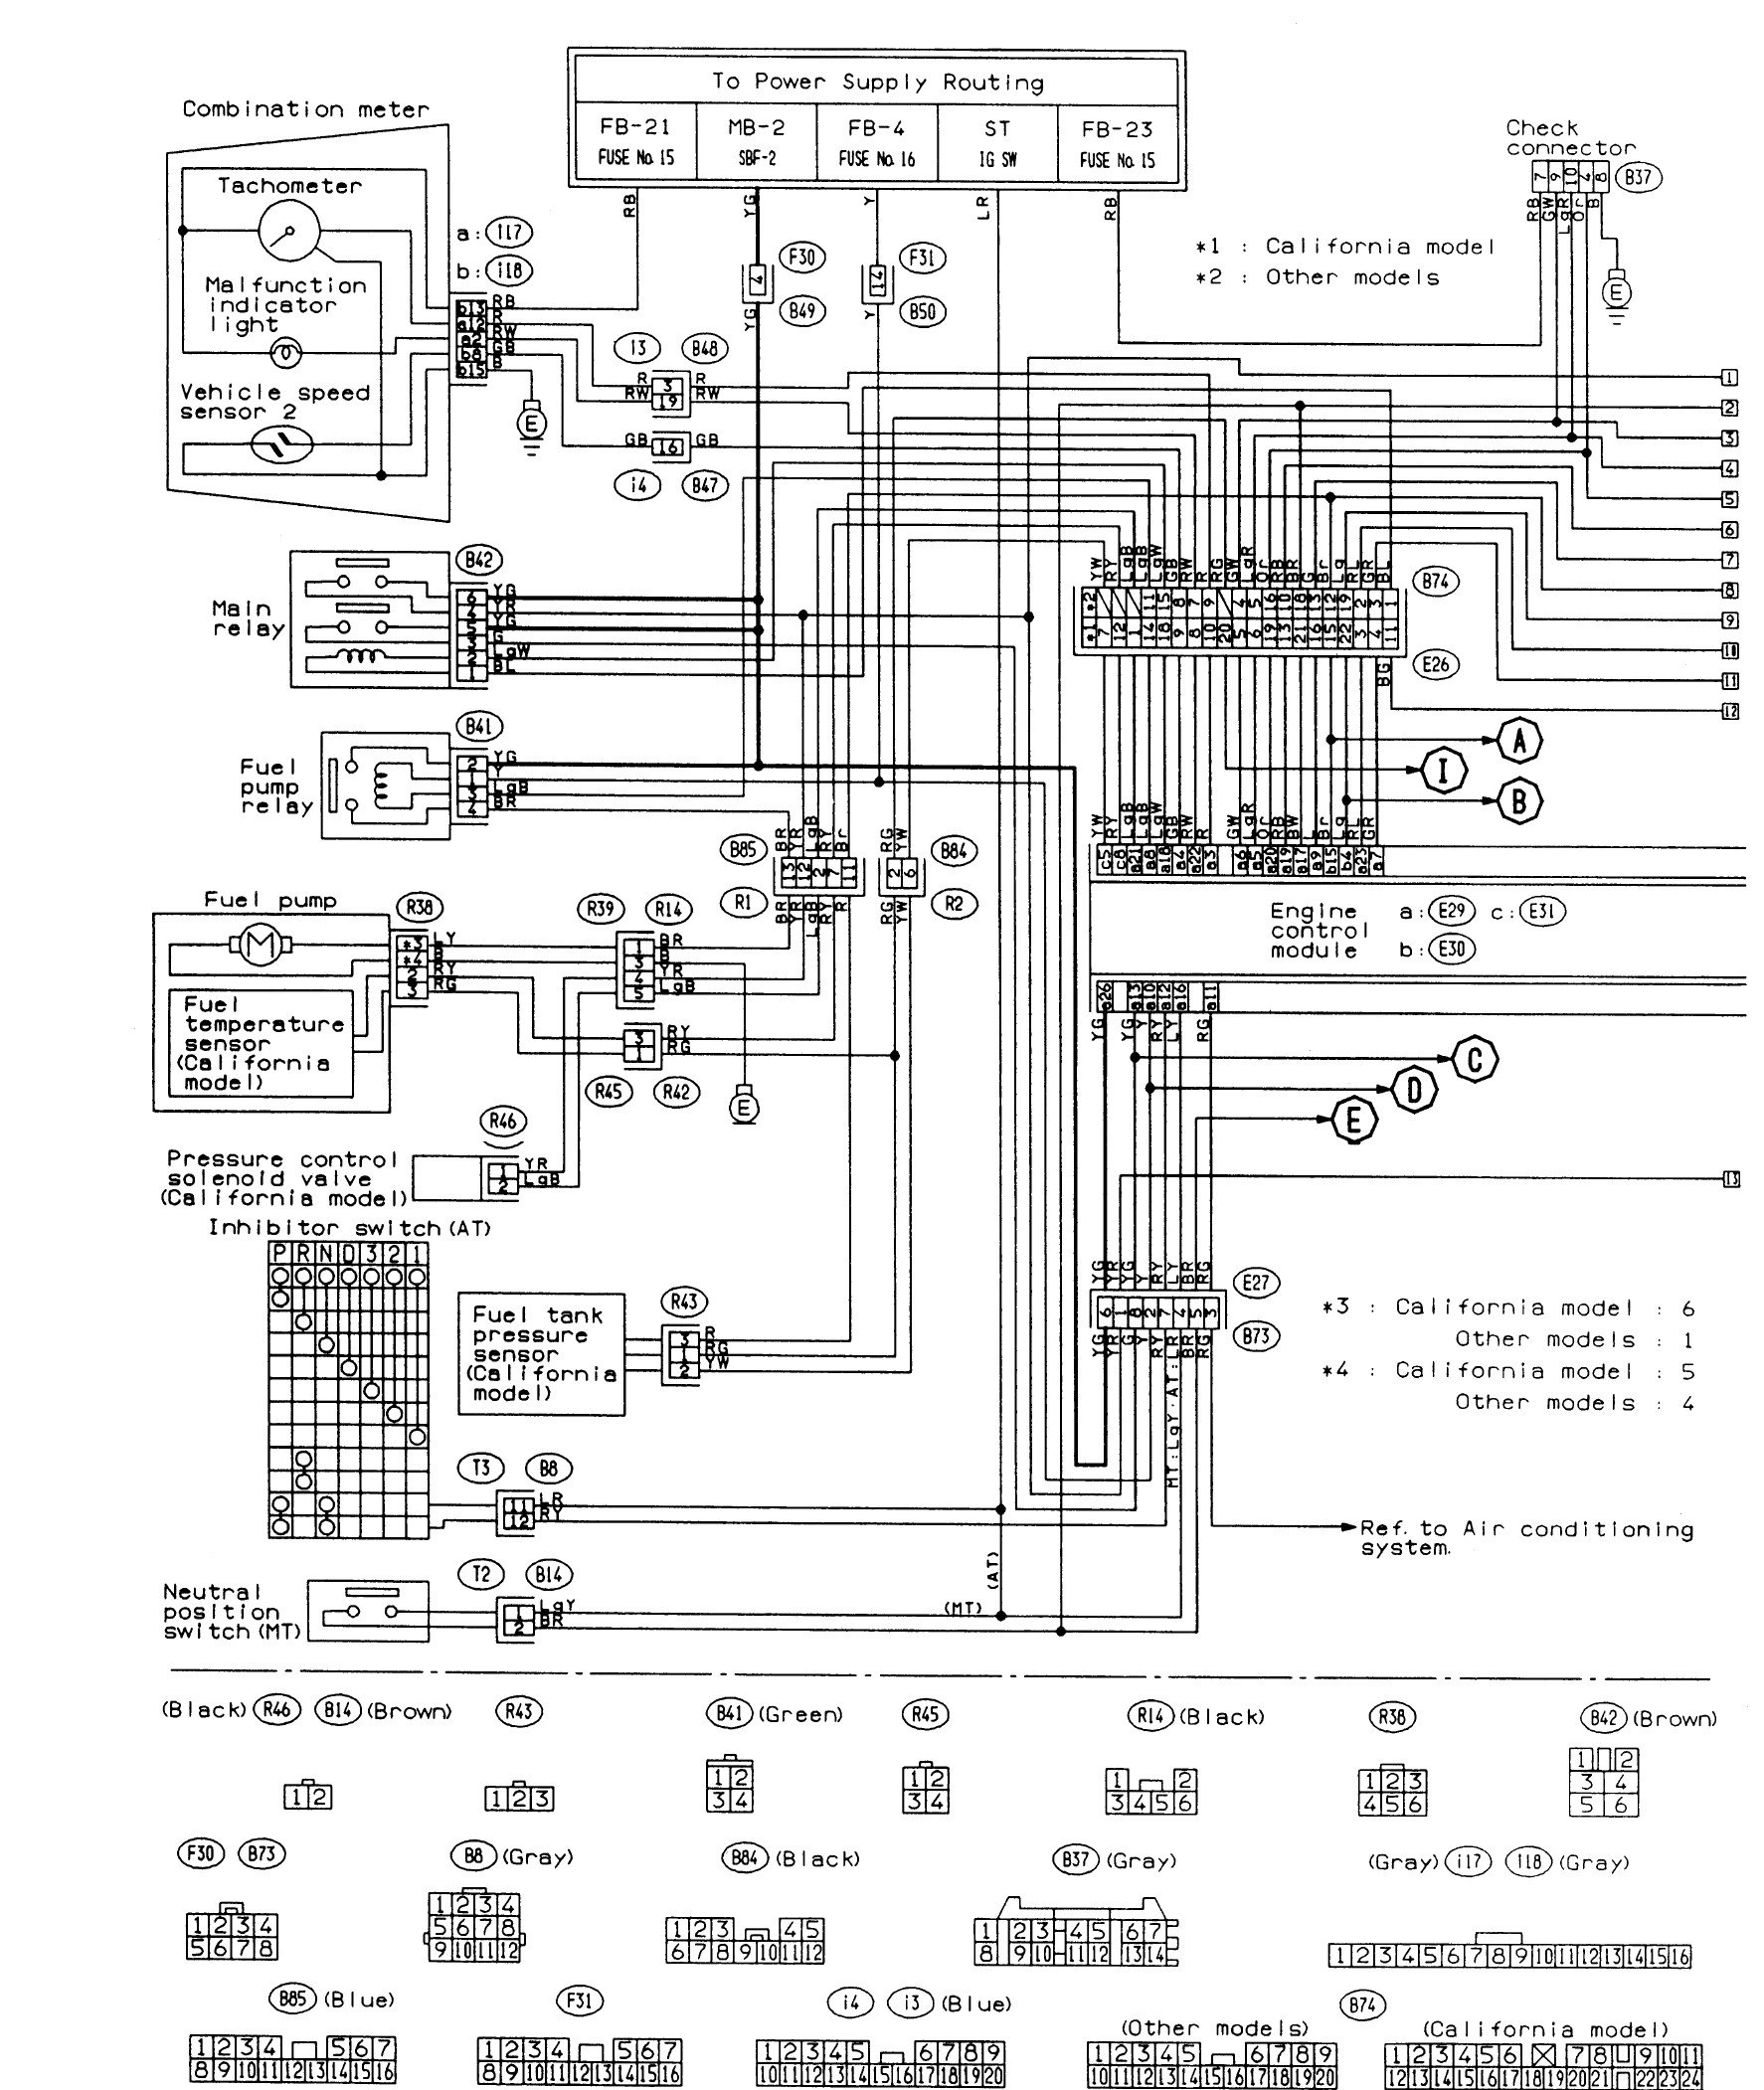 Subaru Legacy Wiring Diagram Download Sample For 2002 Jeep Grand Cherokee Pictures Detail Name